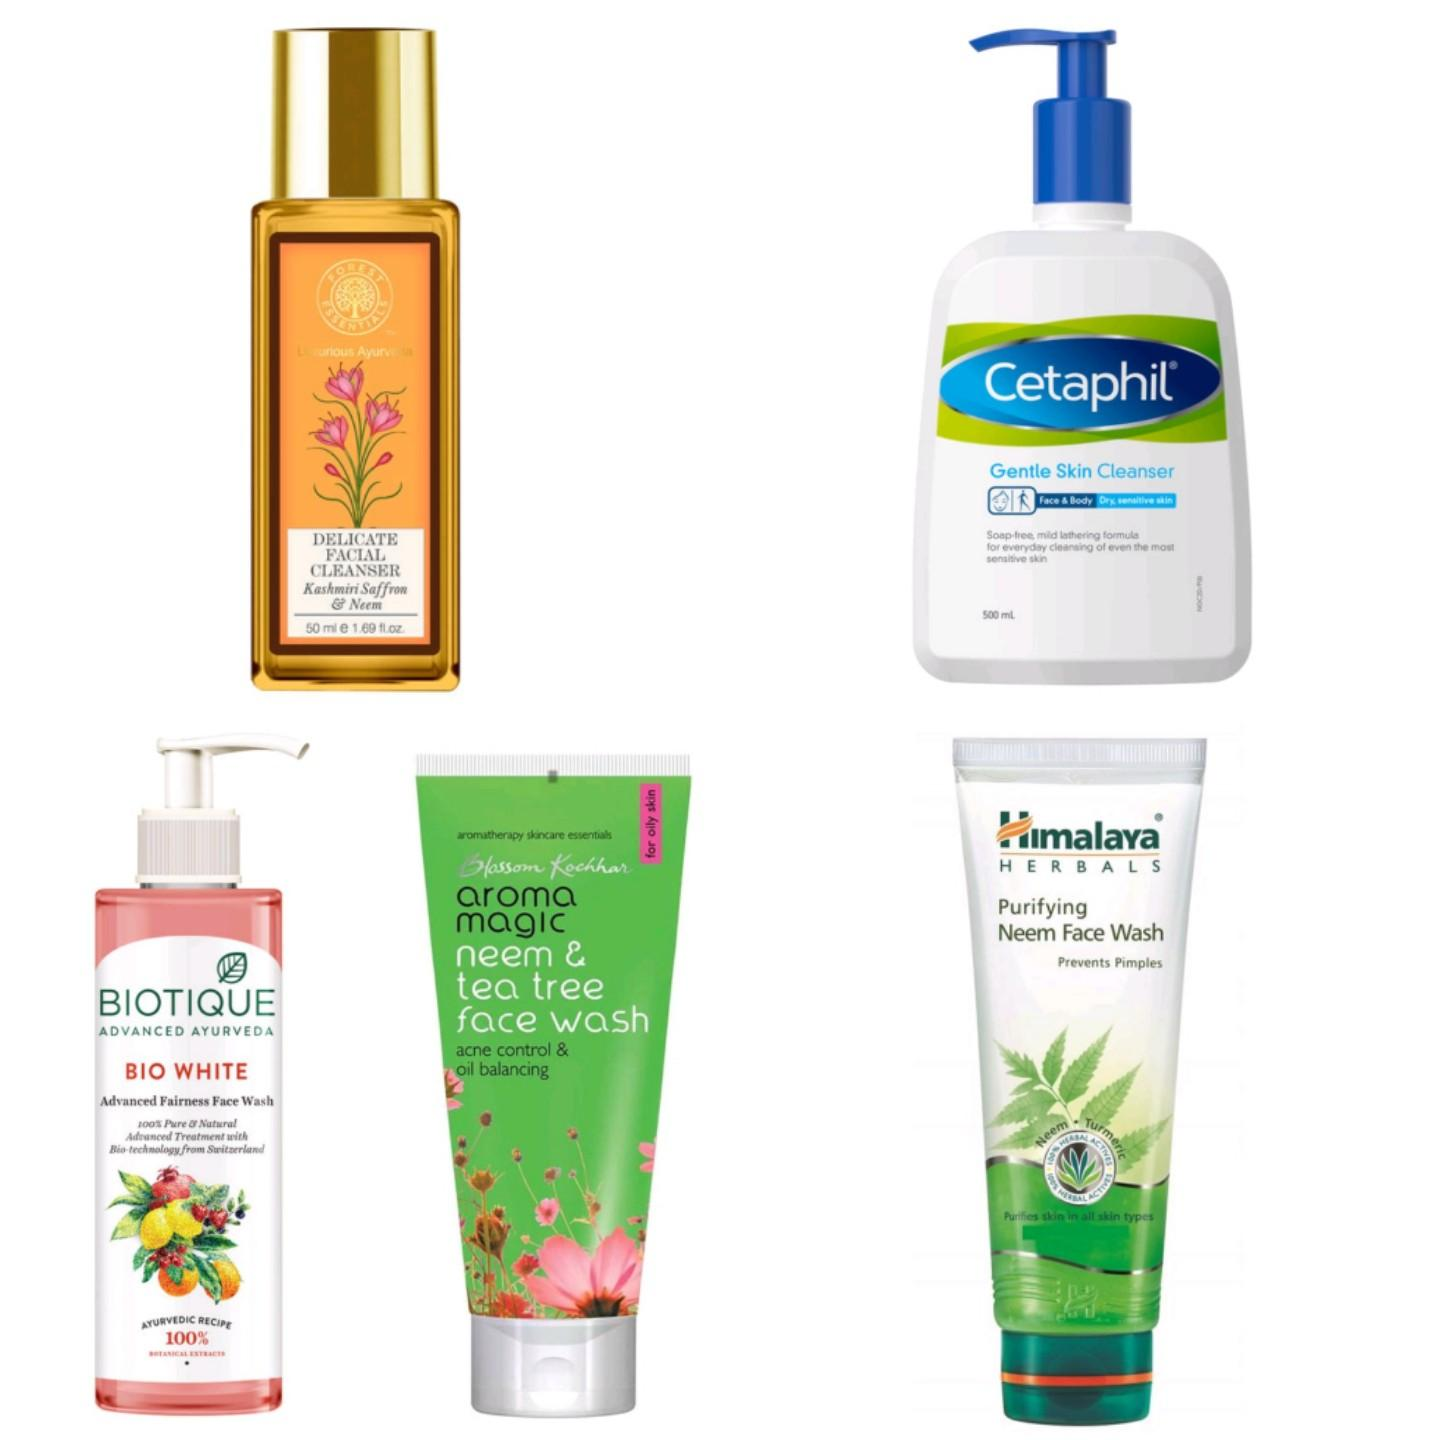 Top Five Affordable Face Washes